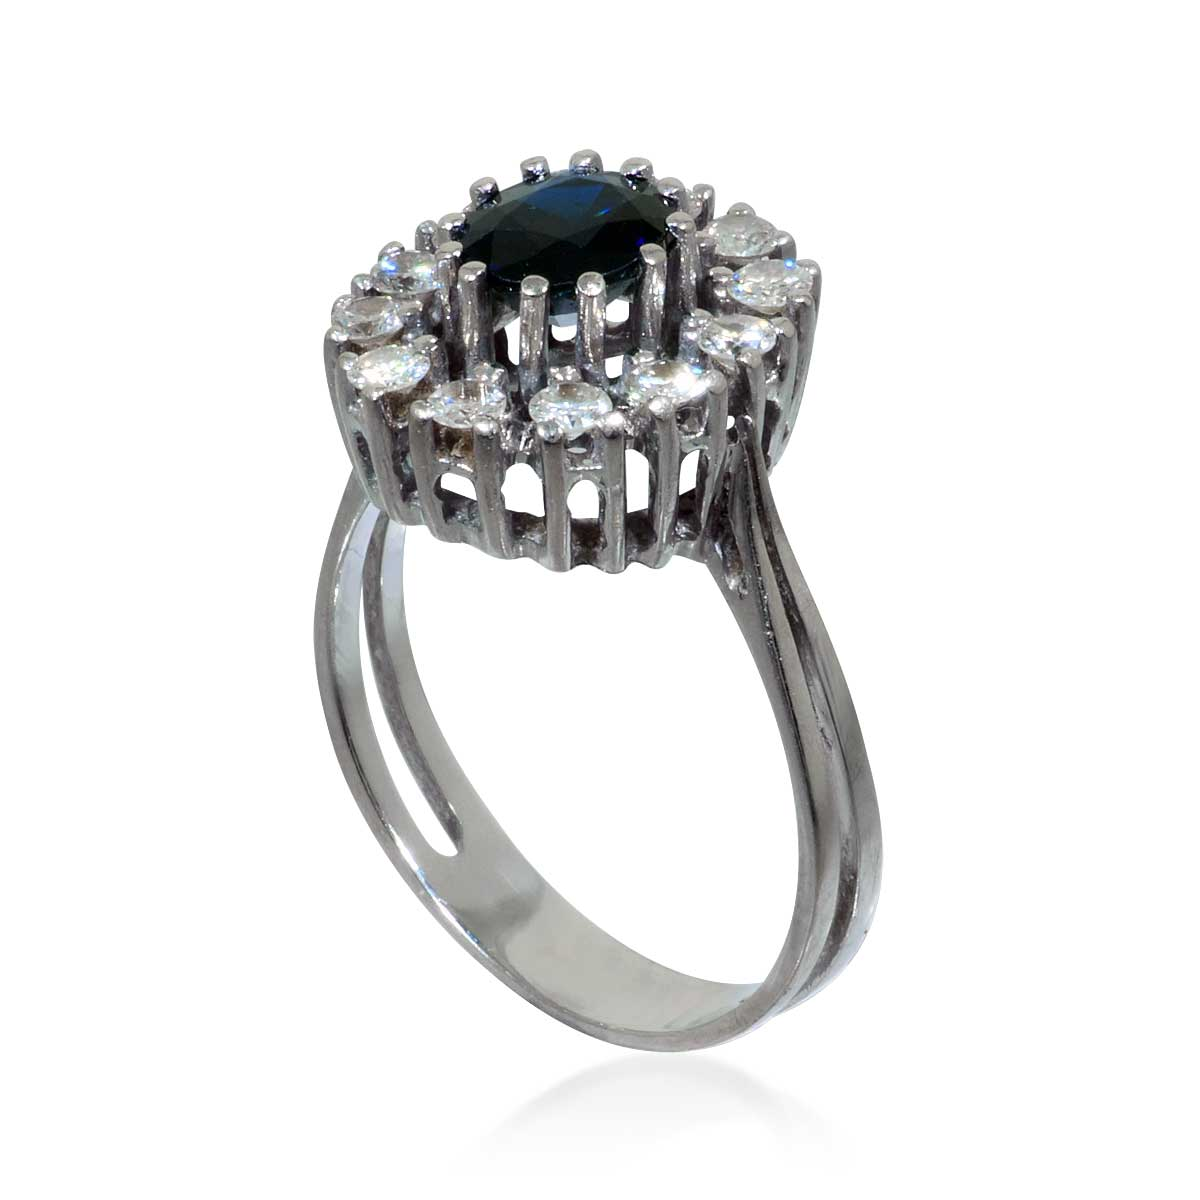 diamant ring mit einem aquamarin rund facettiert in weissgold schmuck. Black Bedroom Furniture Sets. Home Design Ideas